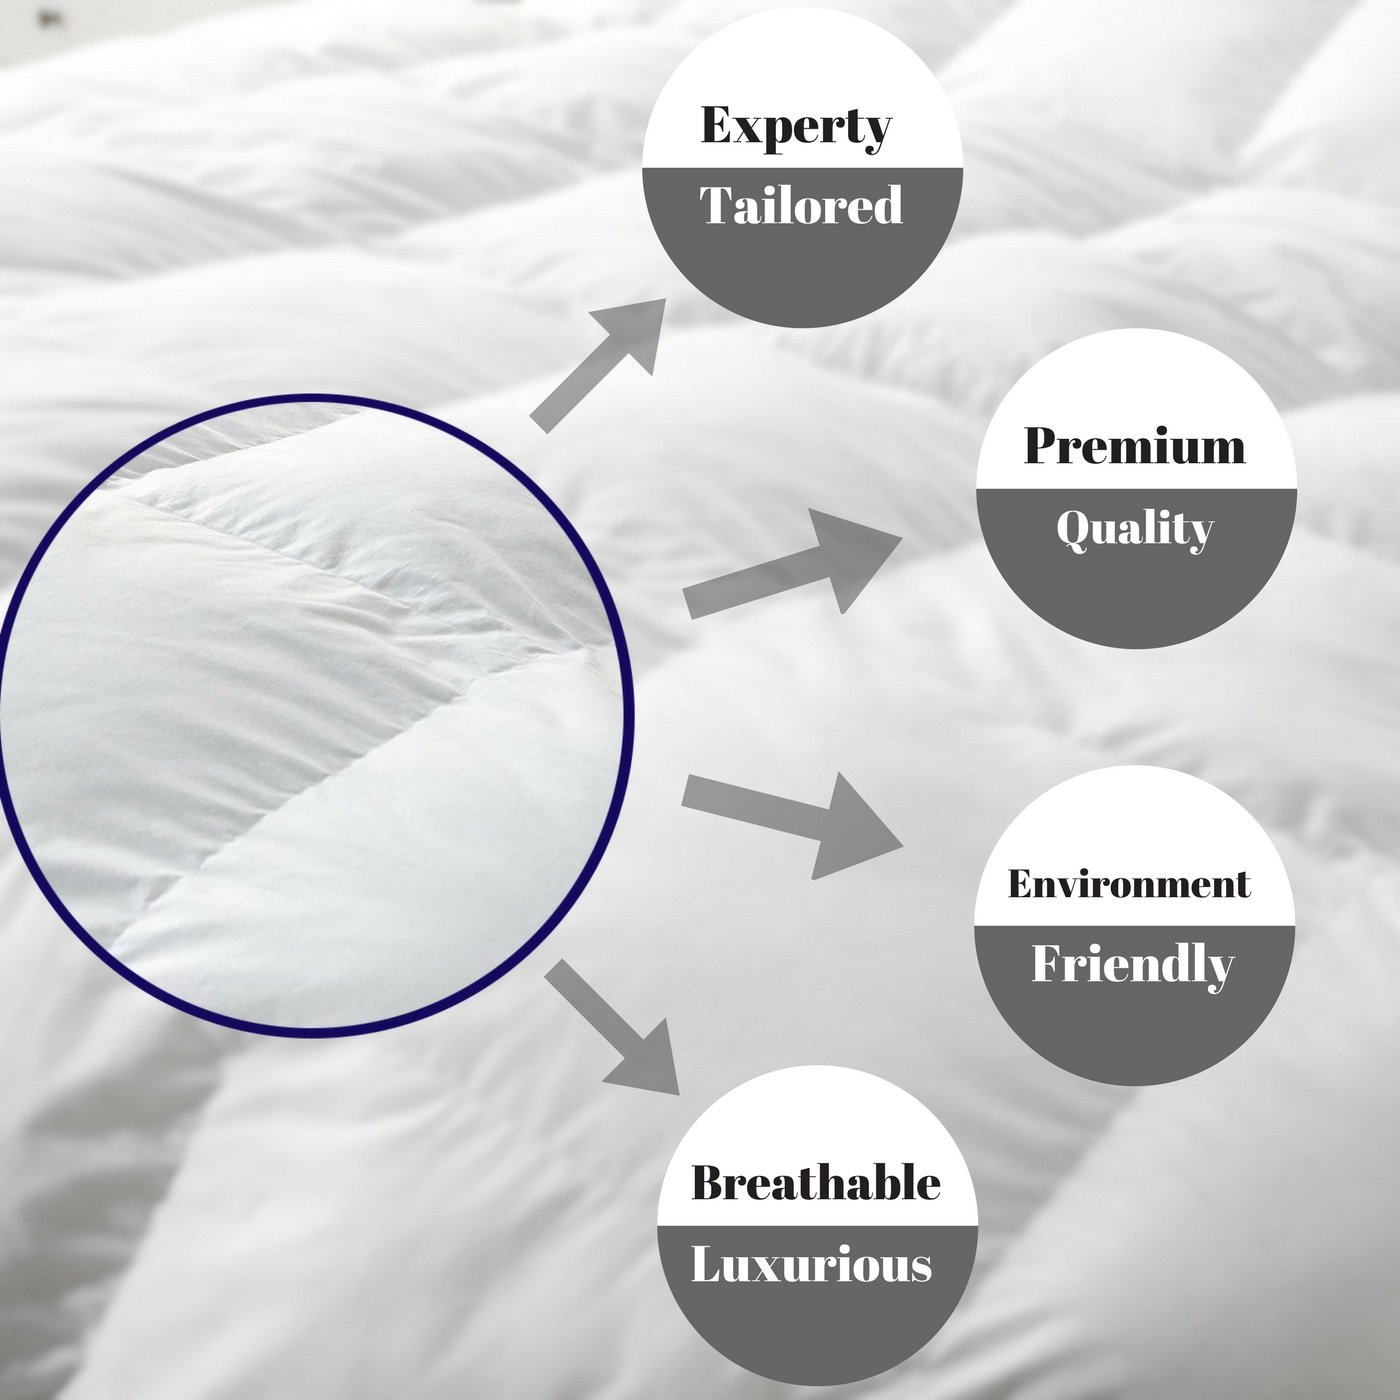 100% Organic Cotton 500 GSM Box Stitched Comforter 600 TC GOTS Certified Luxury Goose Down Light-Weight Italian Finish Quilt Cozy Ultra-Soft Fluffy by Bedding Homes(Full/Queen, Sage) by Bedding Homes (Image #4)